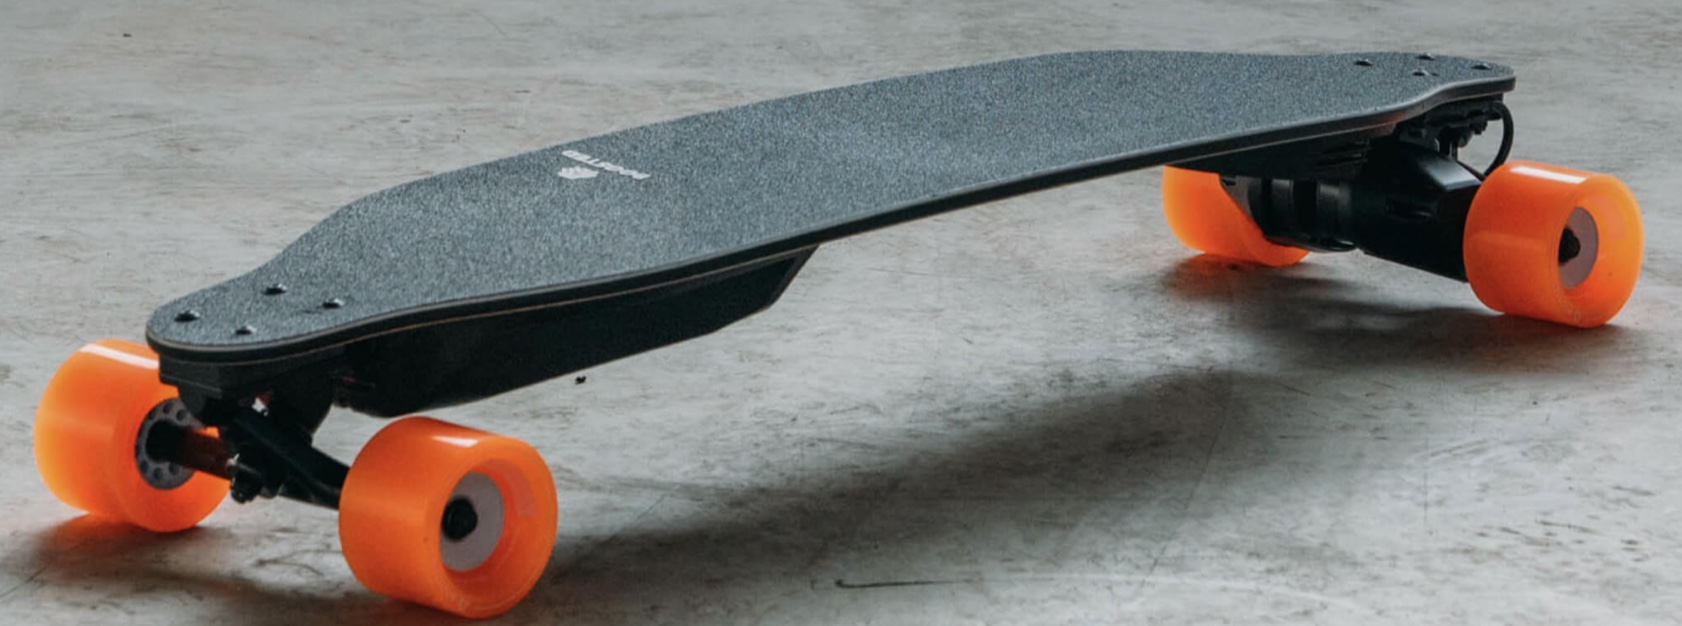 boosted board review 2018 mini s mini x plus stealth previews